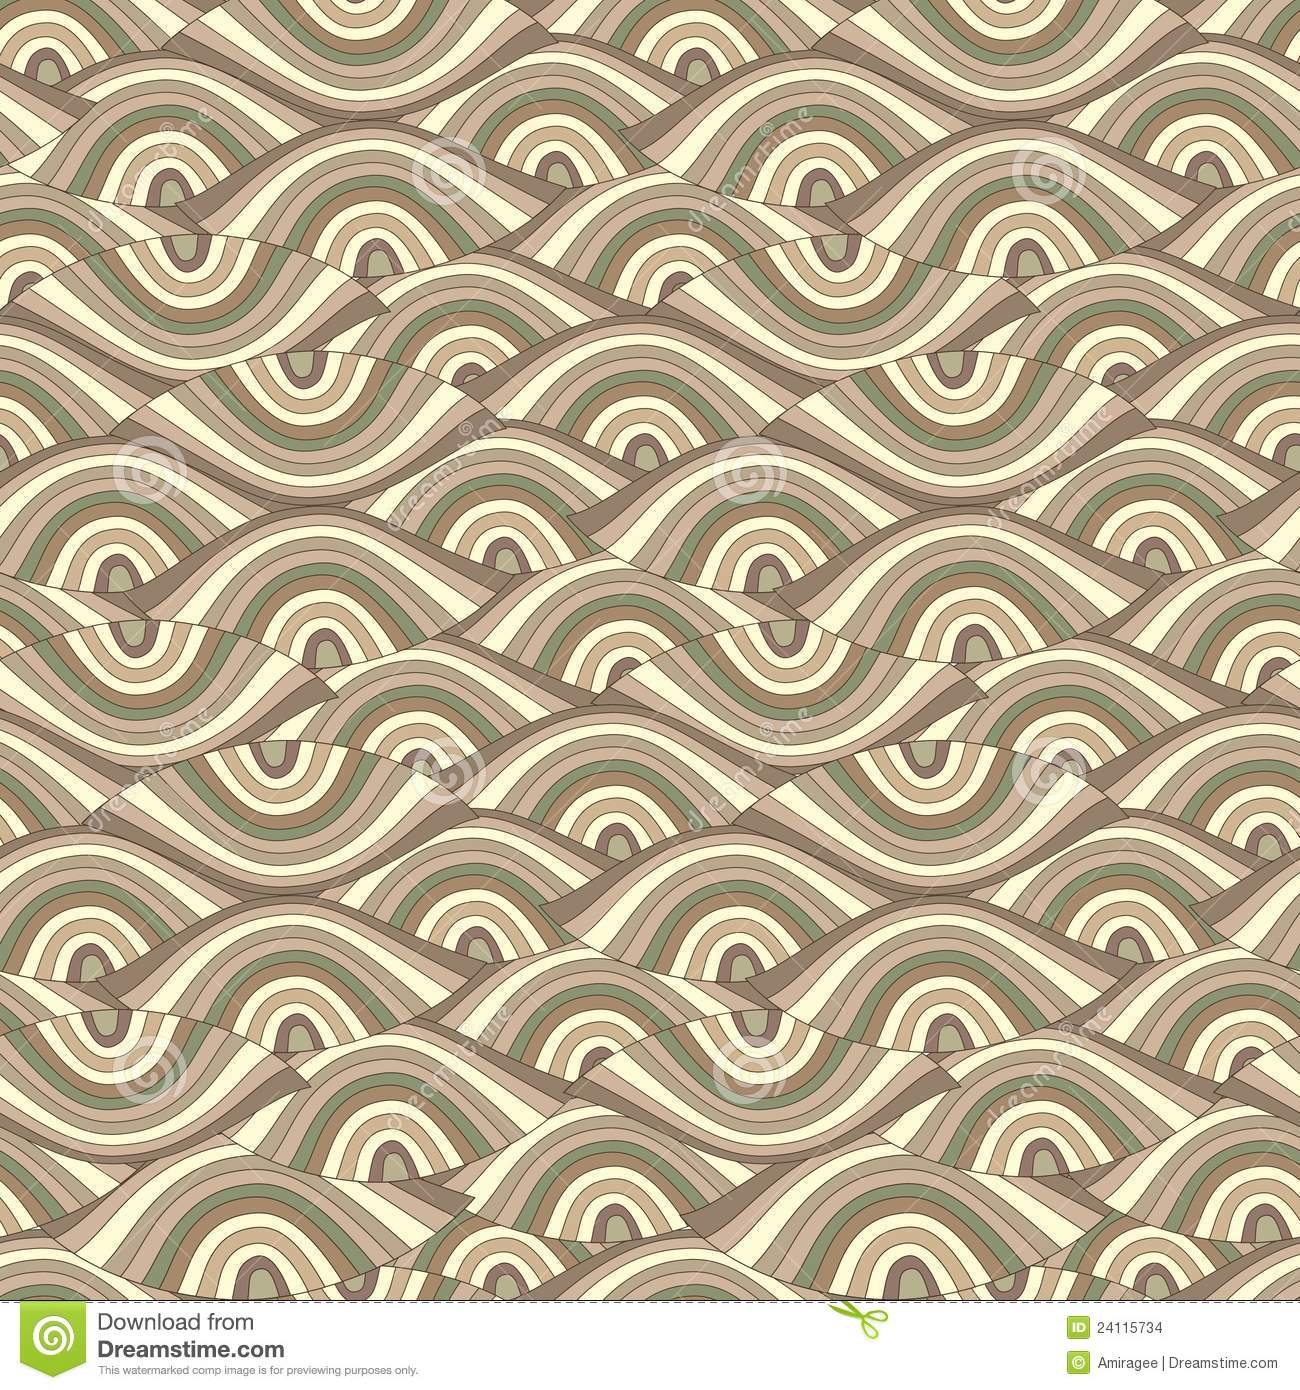 Vector seamless abstract background with eyes